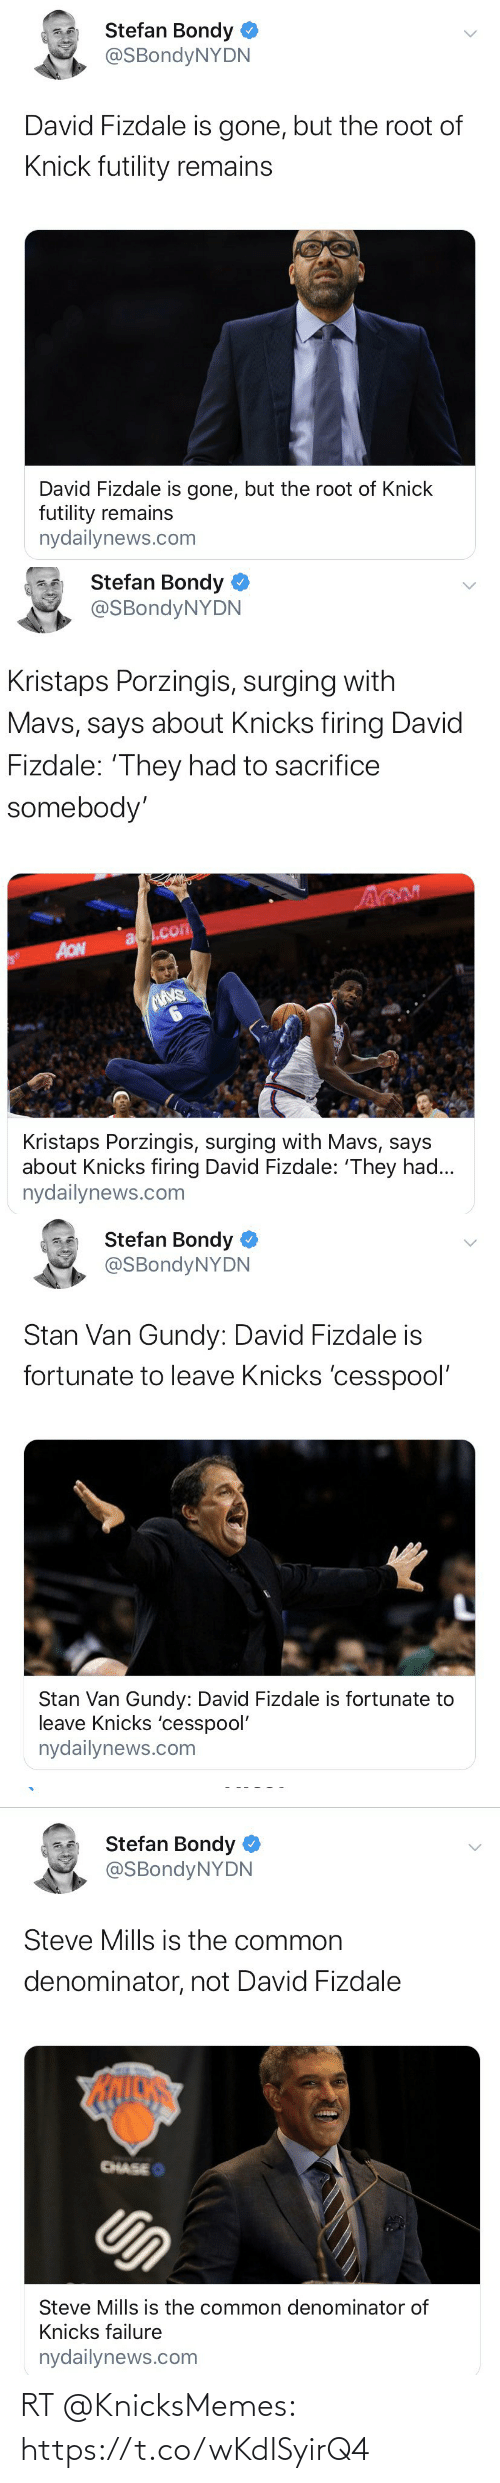 Nydailynews: Stefan Bondy  @SBondyNYDN  David Fizdale is gone, but the root of  Knick futility remains  David Fizdale is gone, but the root of Knick  futility remains  nydailynews.com   Stefan Bondy  @SBondyNYDN  Kristaps Porzingis, surging with  Mavs, says about Knicks firing David  Fizdale: 'They had to sacrifice  somebody'  a.com  AON  MAVS  Kristaps Porzingis, surging with Mavs, says  about Knicks firing David Fizdale: 'They had...  nydailynews.com   Stefan Bondy  @SBondyNYDN  Stan Van Gundy: David Fizdale is  fortunate to leave Knicks 'cesspool'  Stan Van Gundy: David Fizdale is fortunate to  leave Knicks 'cesspool'  nydailynews.com   Stefan Bondy  @SBondyNYDN  Steve Mills is the common  denominator, not David Fizdale  CHASEO  Un  Steve Mills is the common denominator of  Knicks failure  nydailynews.com RT @KnicksMemes: https://t.co/wKdISyirQ4